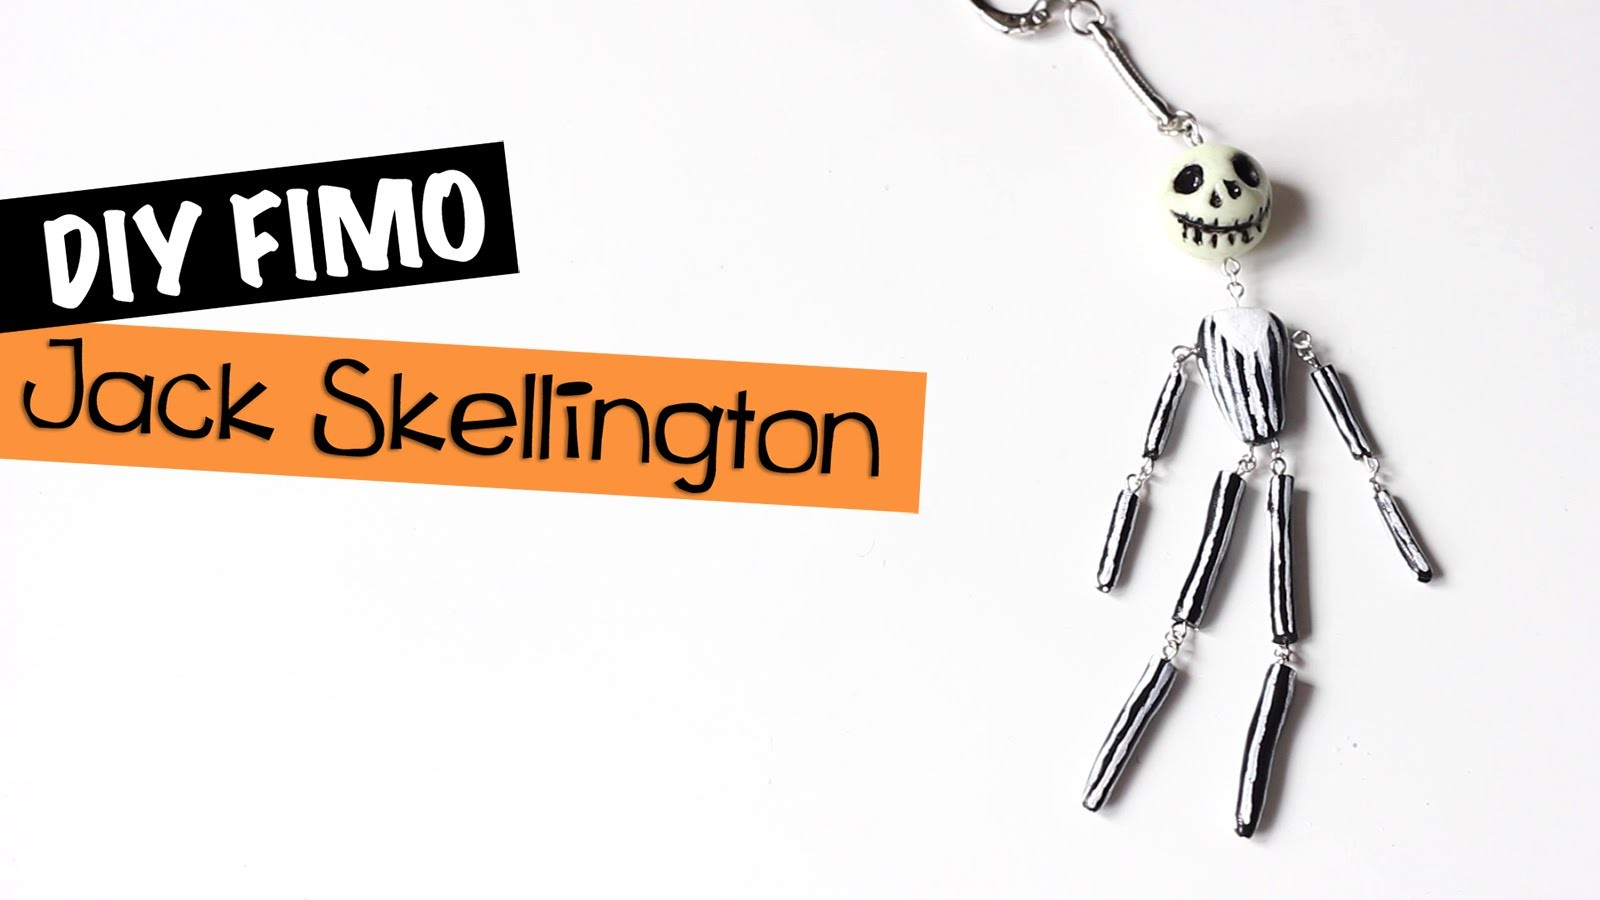 DIY # Tuto Halloween : Jack Skellington en fimo